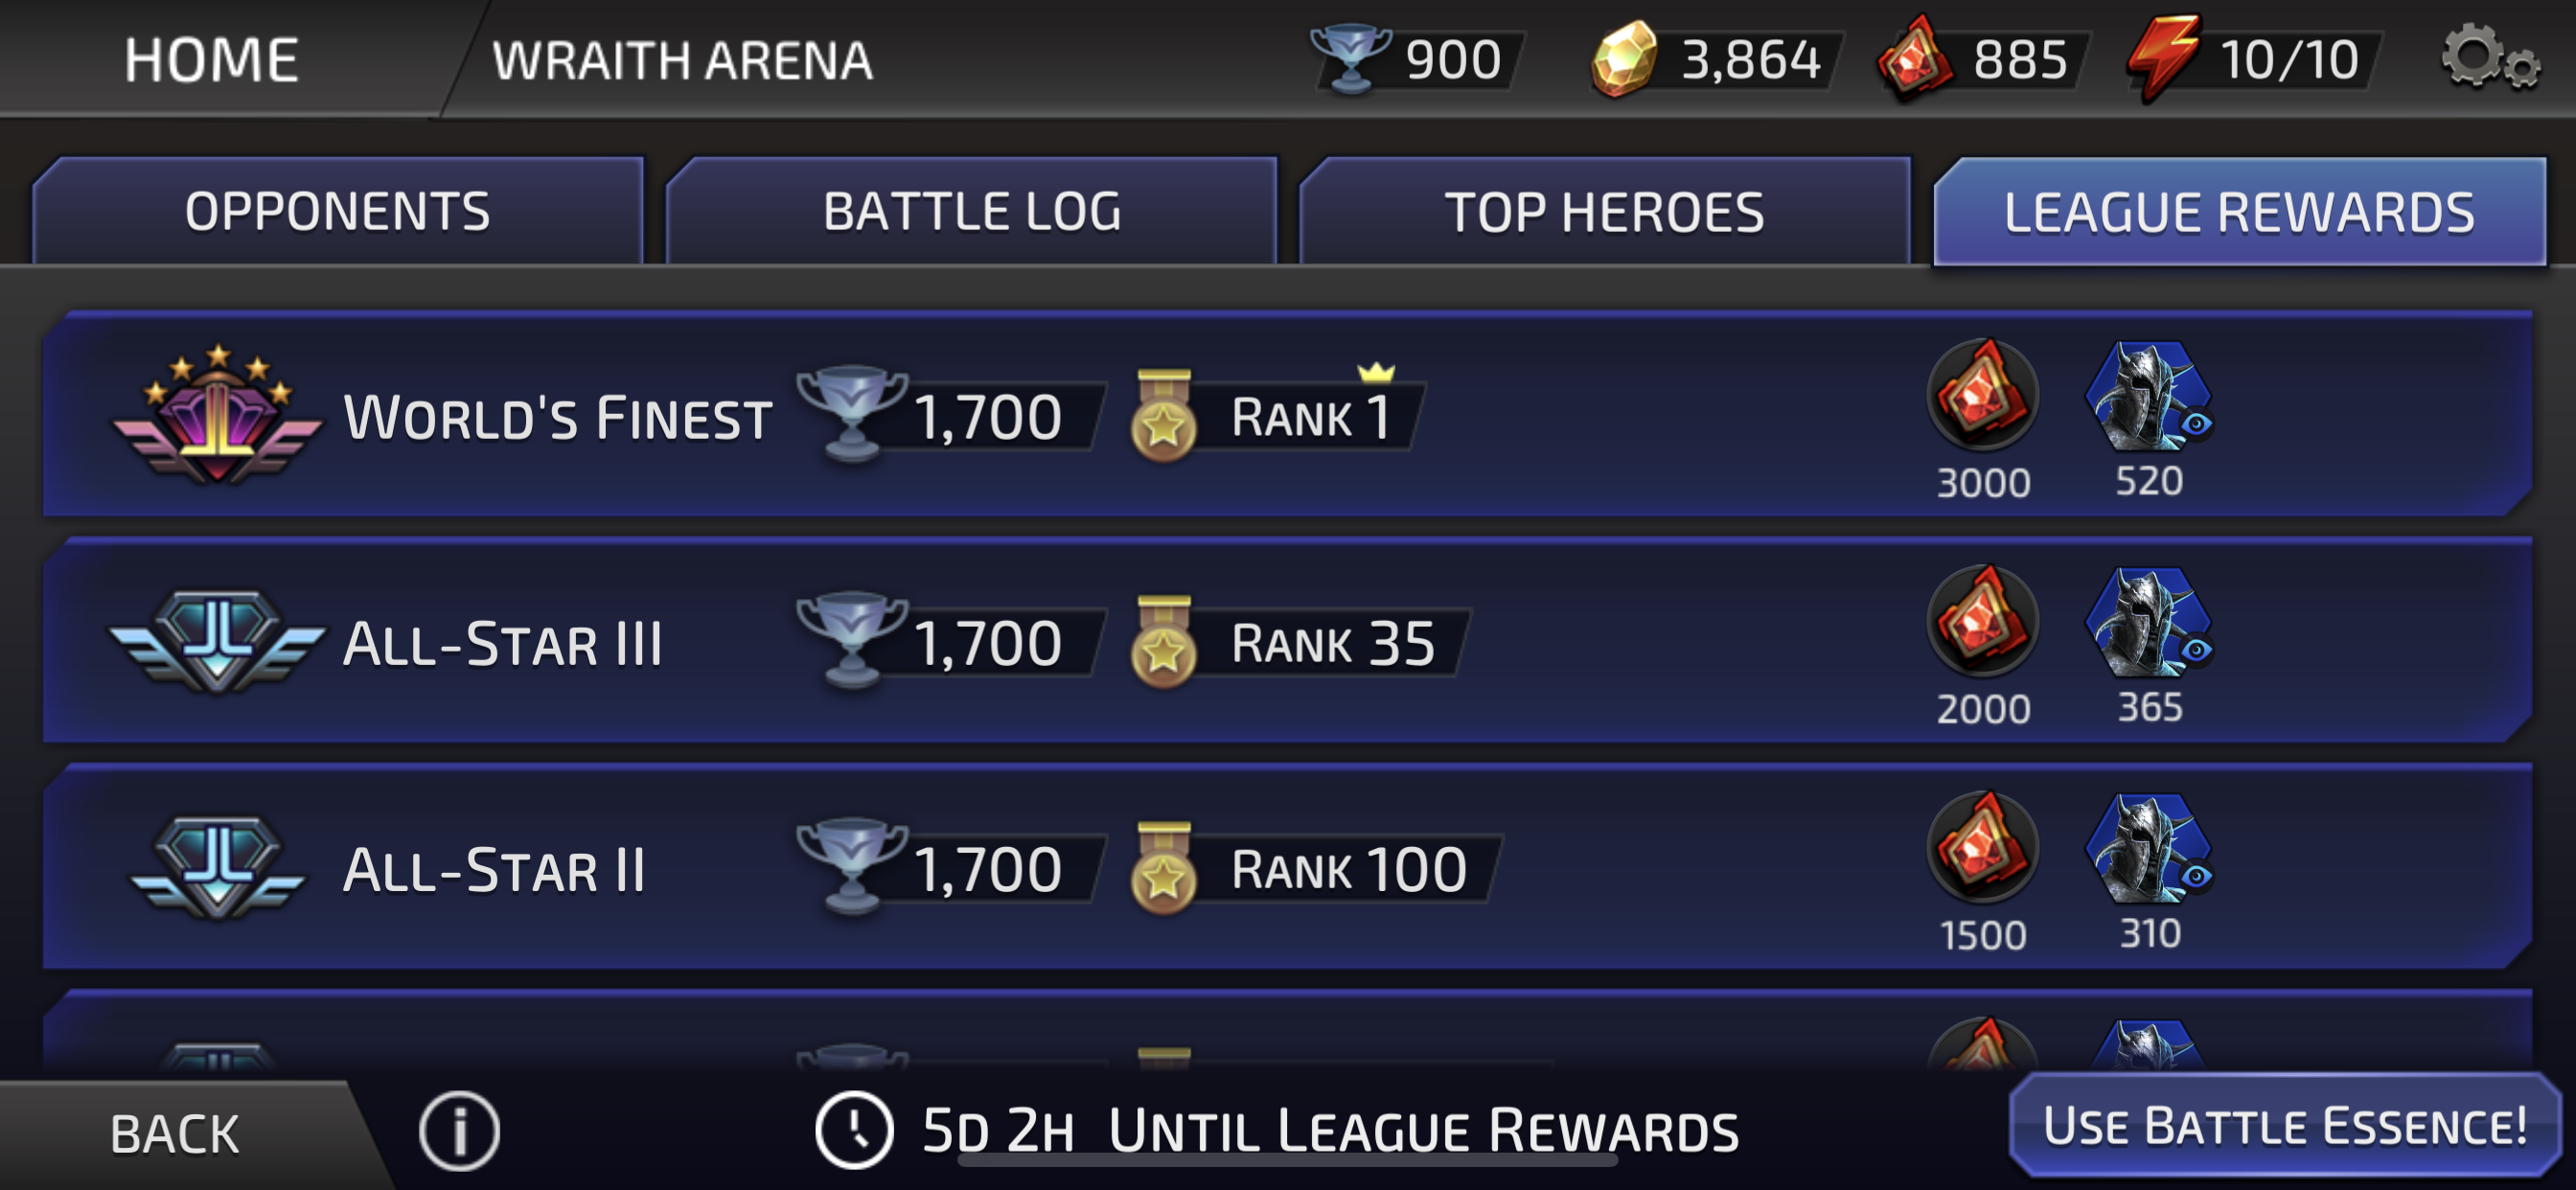 PvP_Arena_Guide_-_Wraith_Arena_Leaderboard.PNG